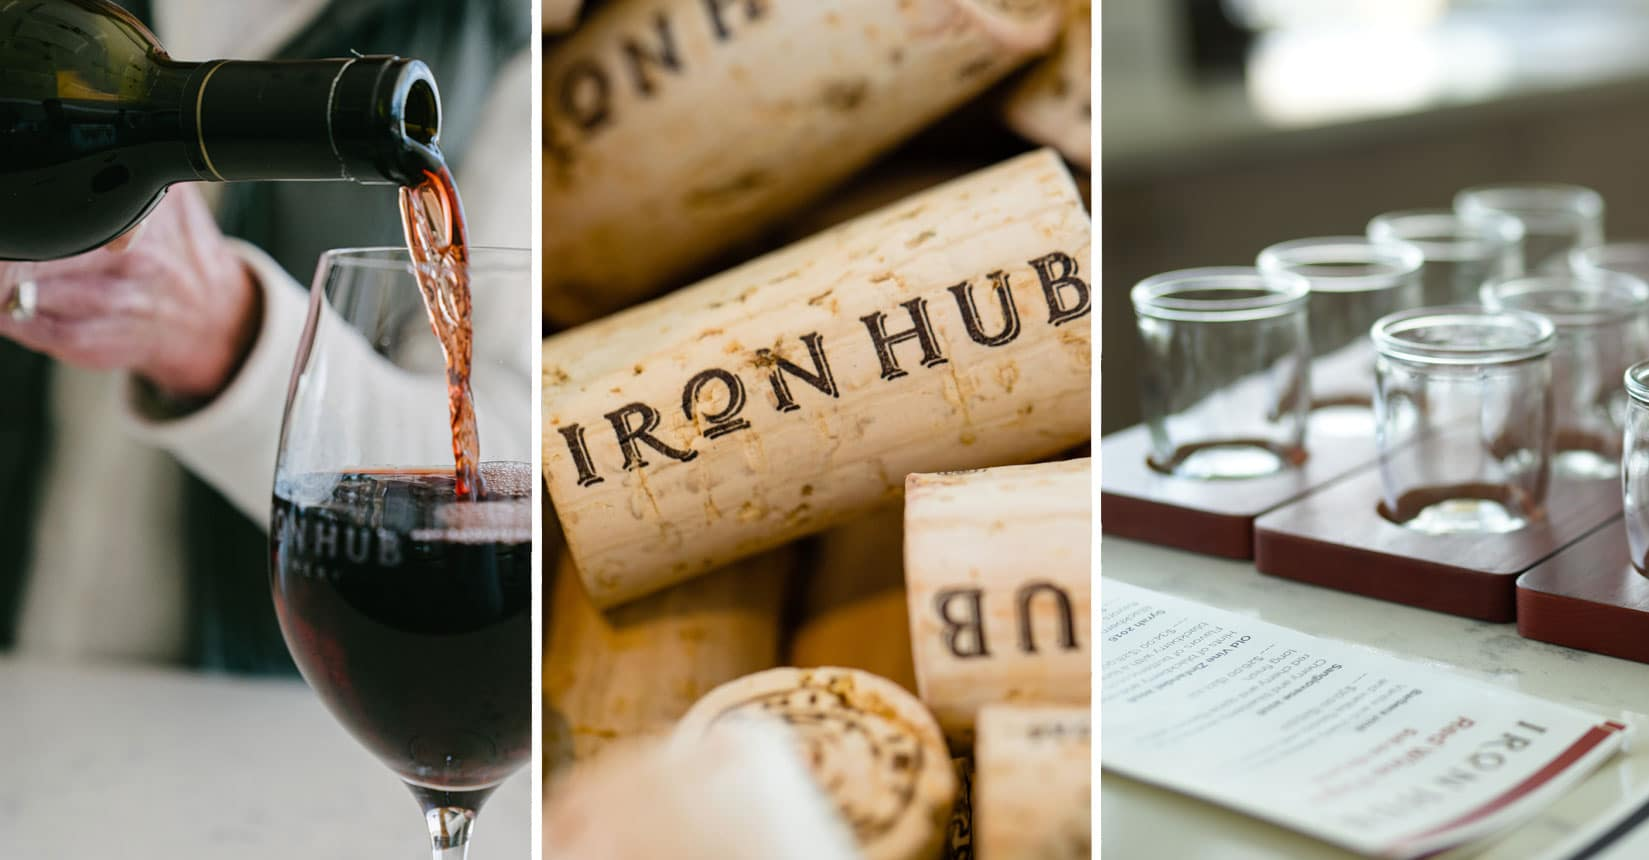 Iron Hub Winery Visit